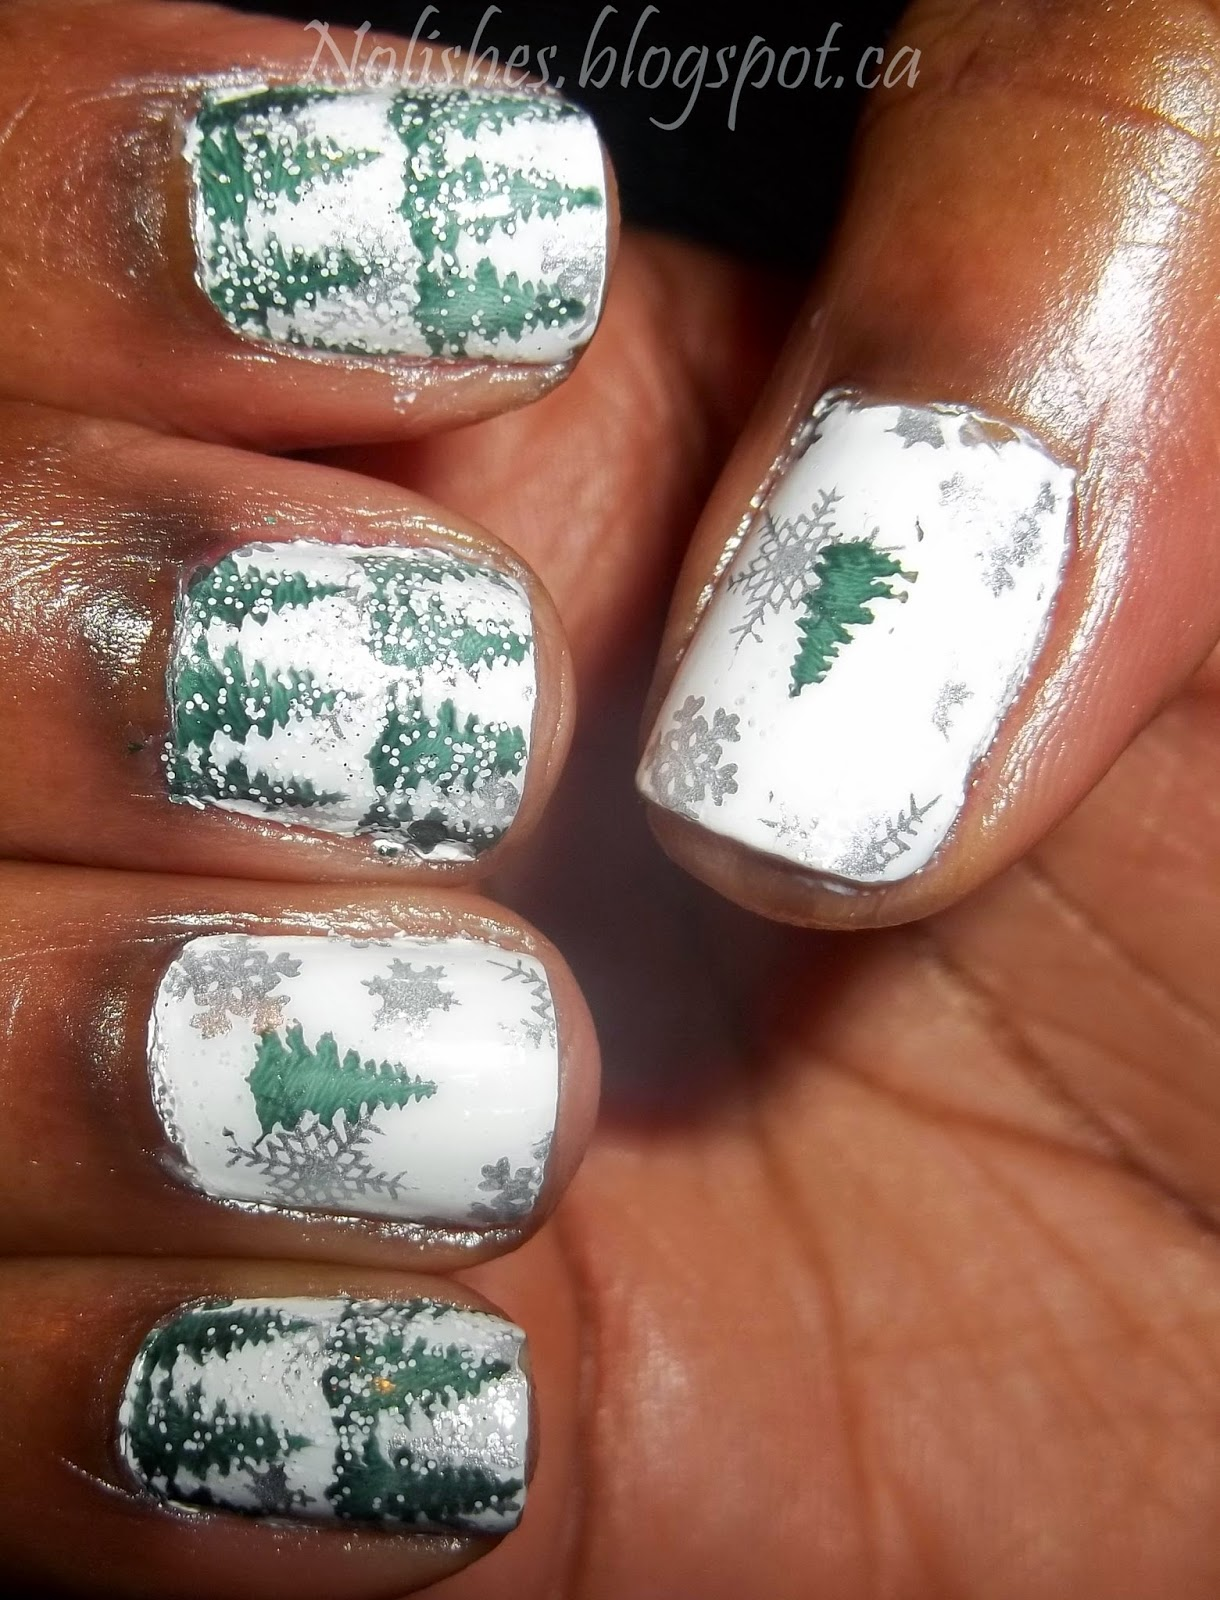 nail stamping manicure featuring forest green pine trees over white background with silver snowflakes - right hand